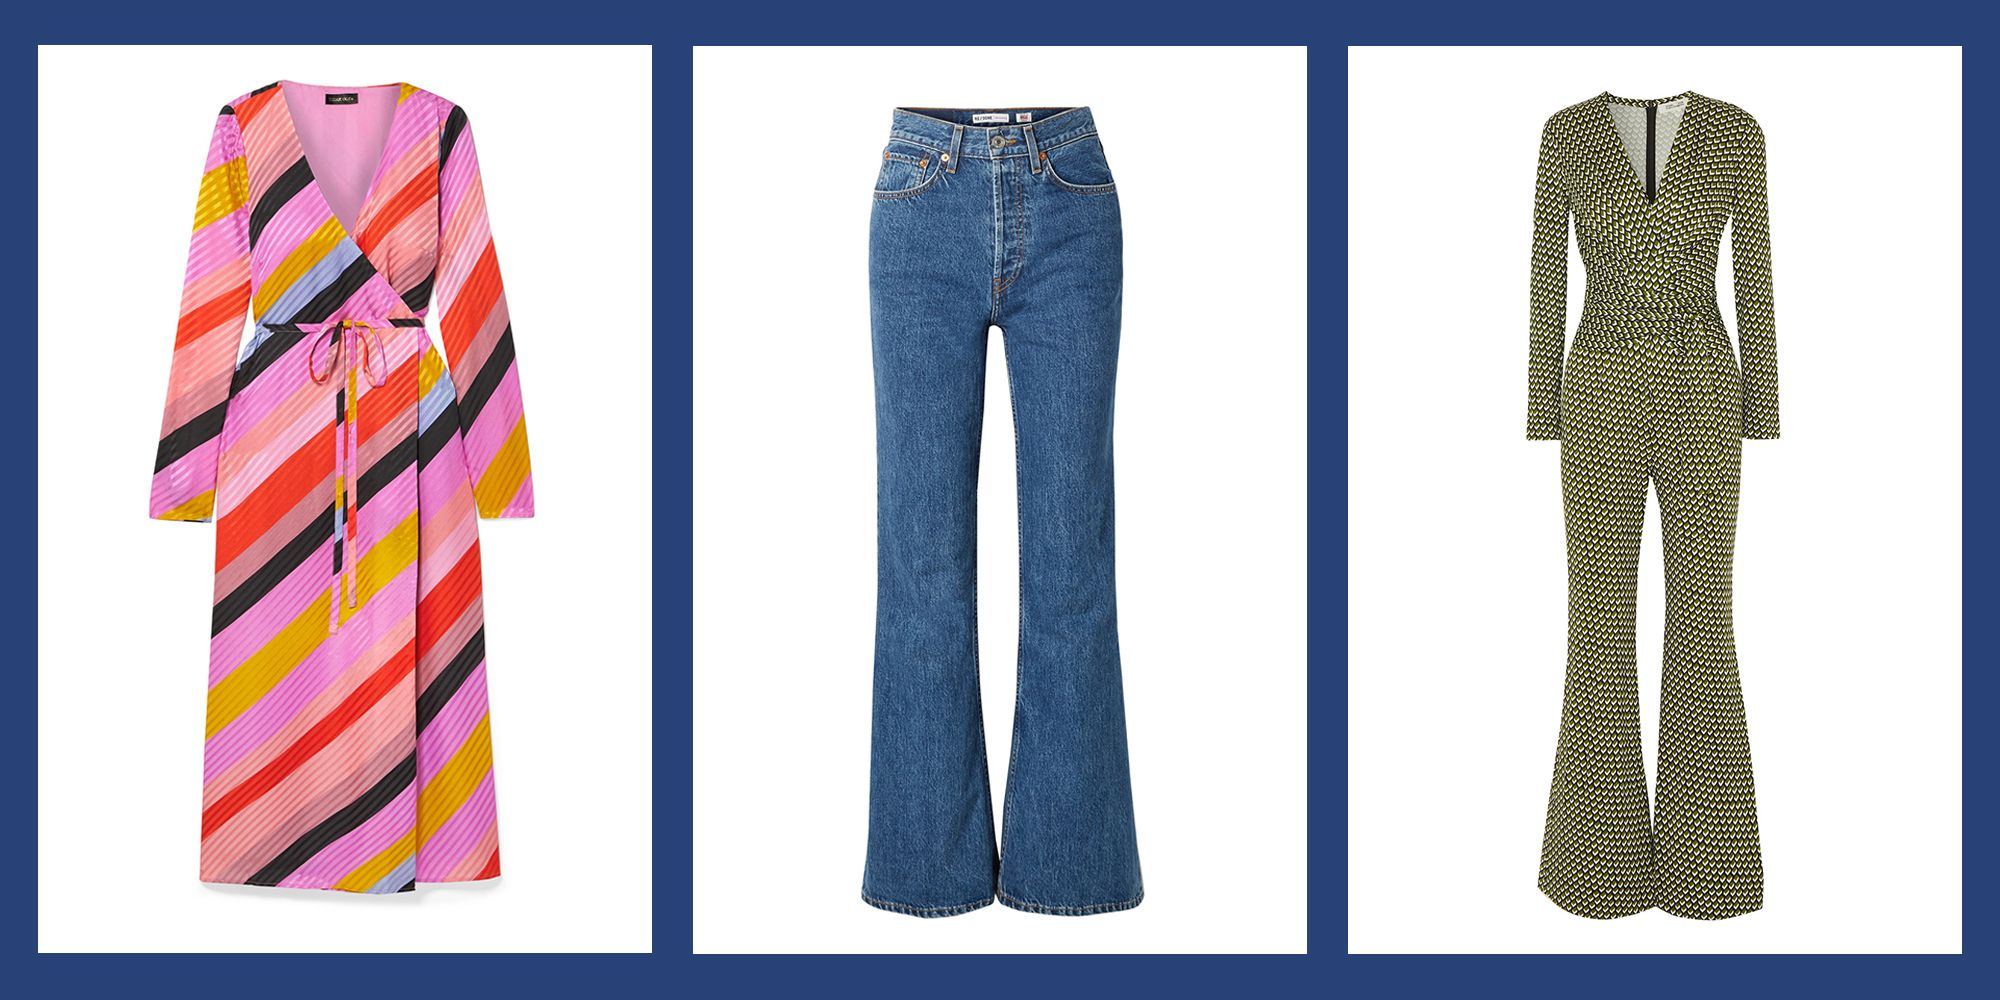 These Trends From the '70s Are Having a Major Moment Now